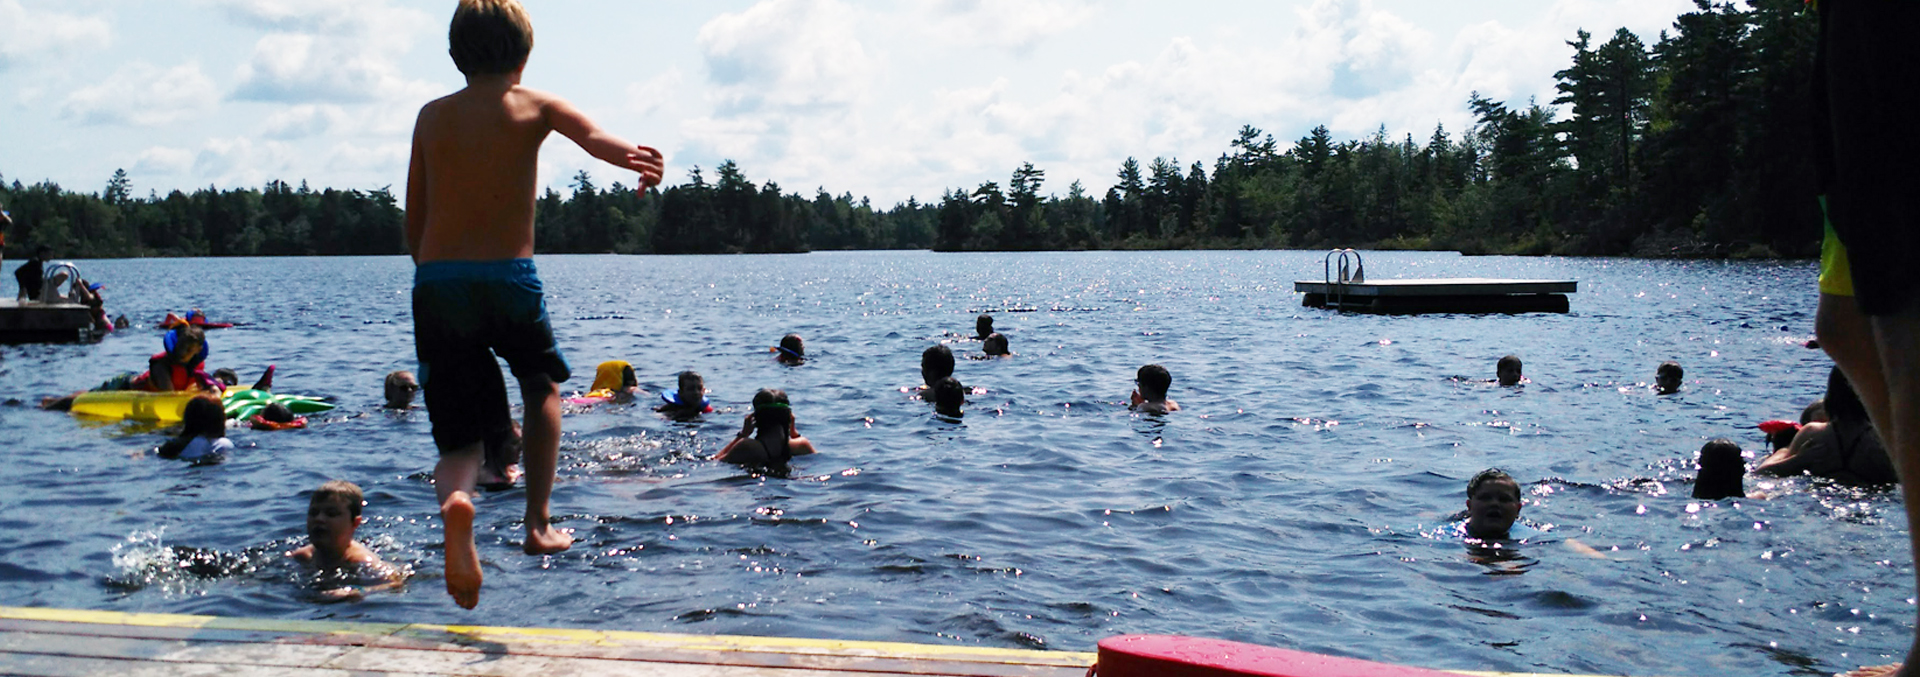 A summer of fun for youth with Crohn's or colitis awaits at Camp Got2Go